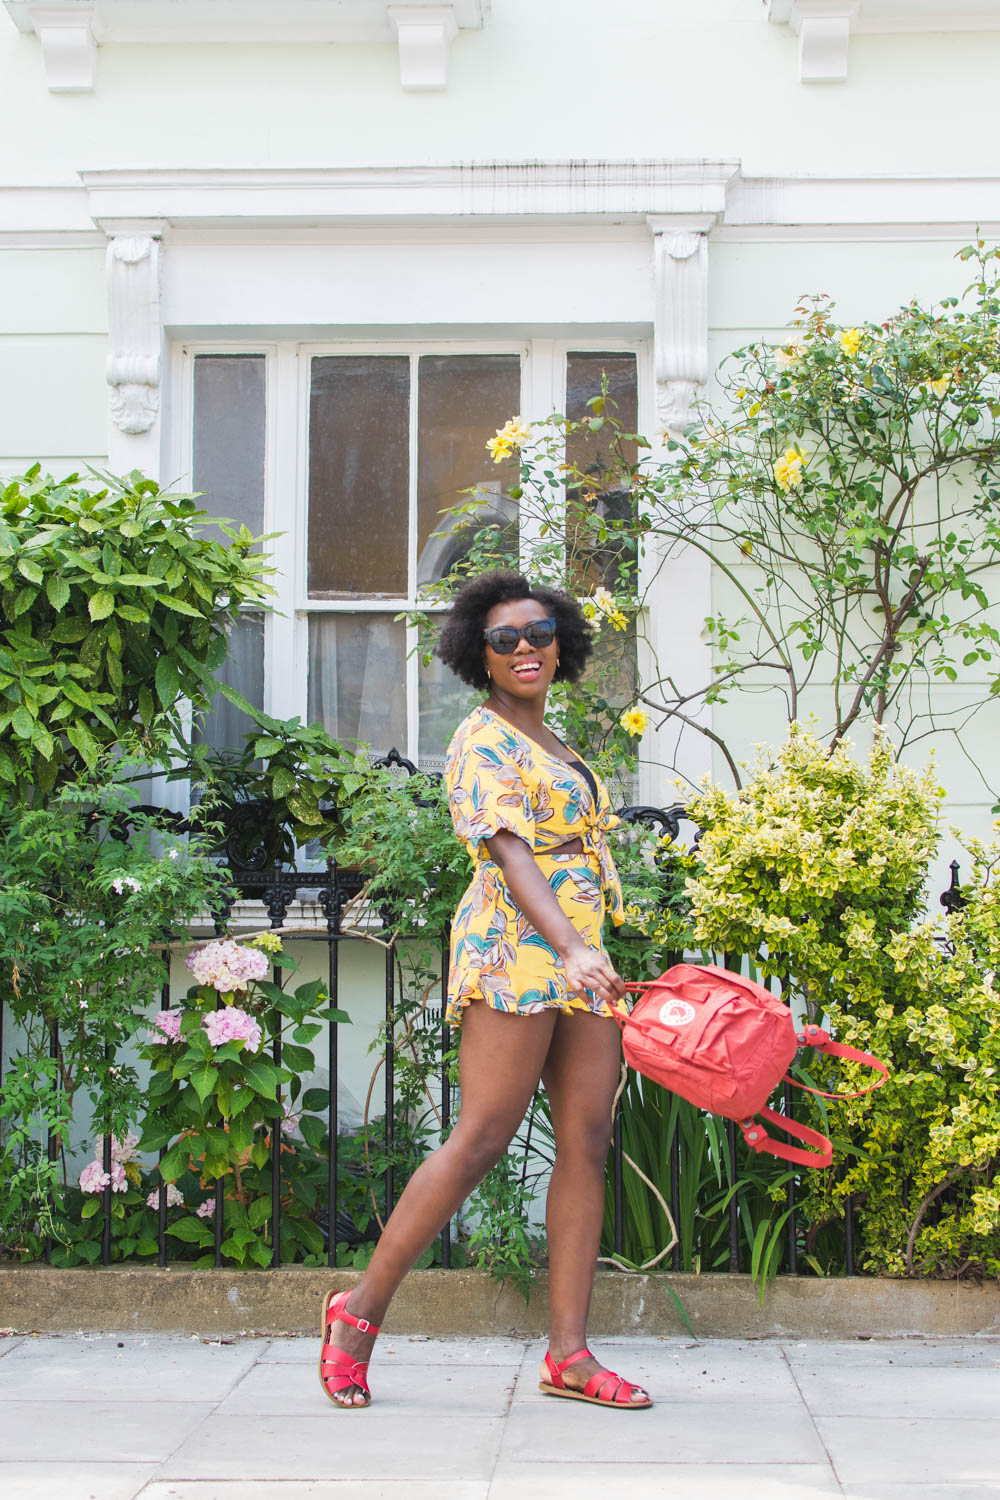 Looking for some heatwave style inspiration? Fashion blogger Kristabel Plummer shares her tips and what she's wearing for the 30 degree temperatures in London, including Boden, ASOS and Grass Fields.